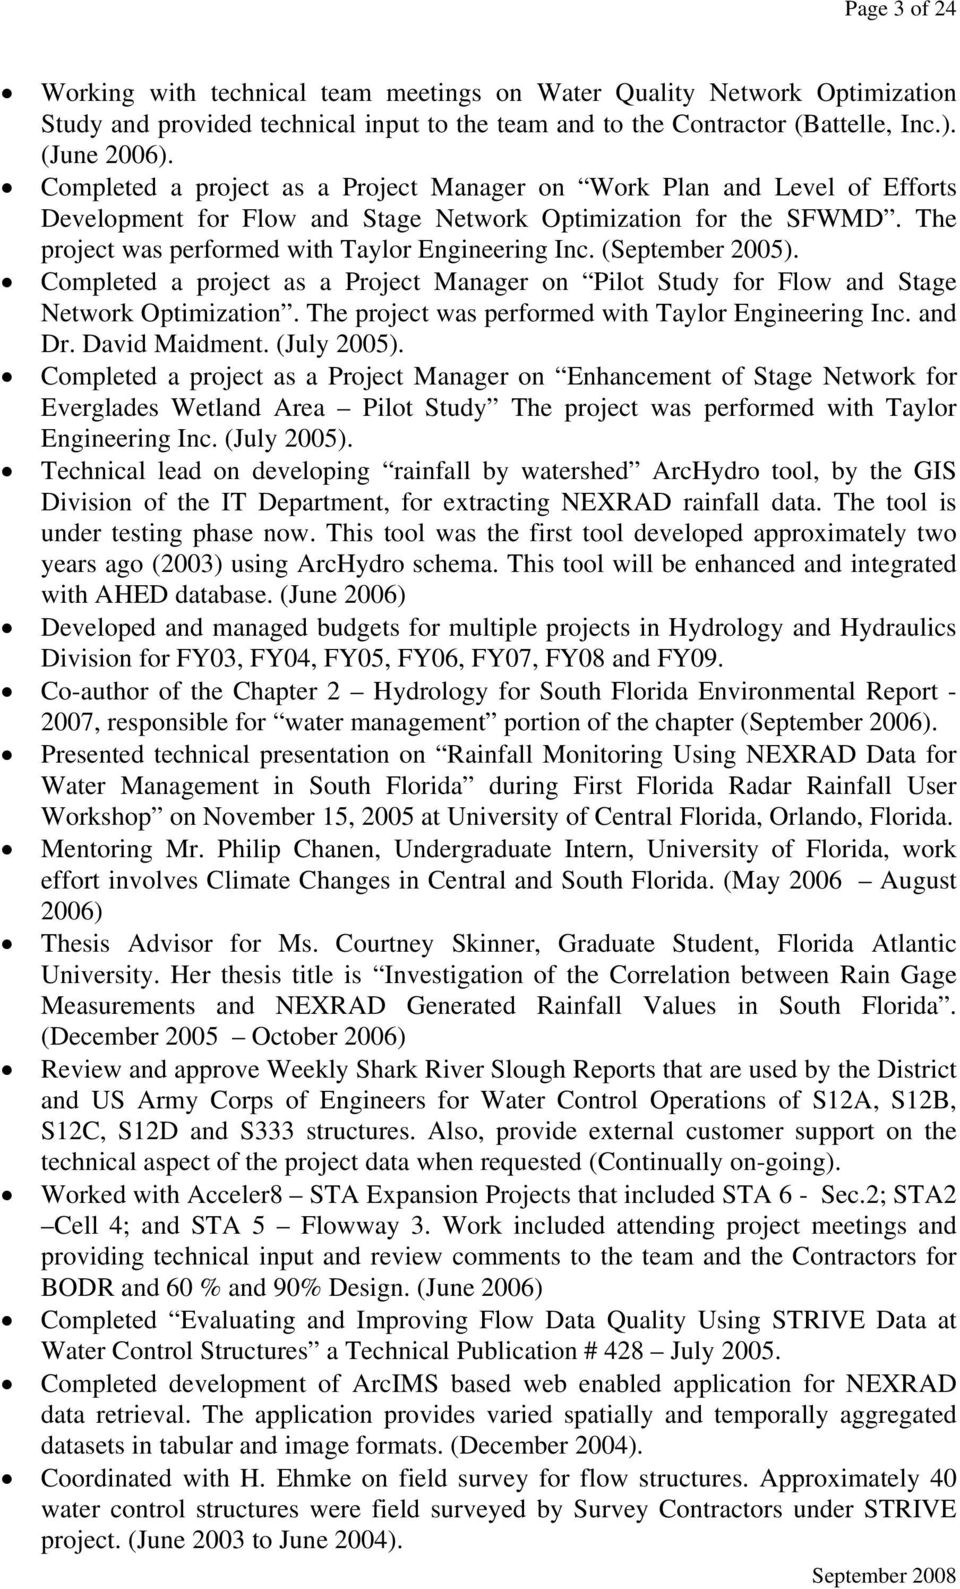 (September 2005). Completed a project as a Project Manager on Pilot Study for Flow and Stage Network Optimization. The project was performed with Taylor Engineering Inc. and Dr. David Maidment.